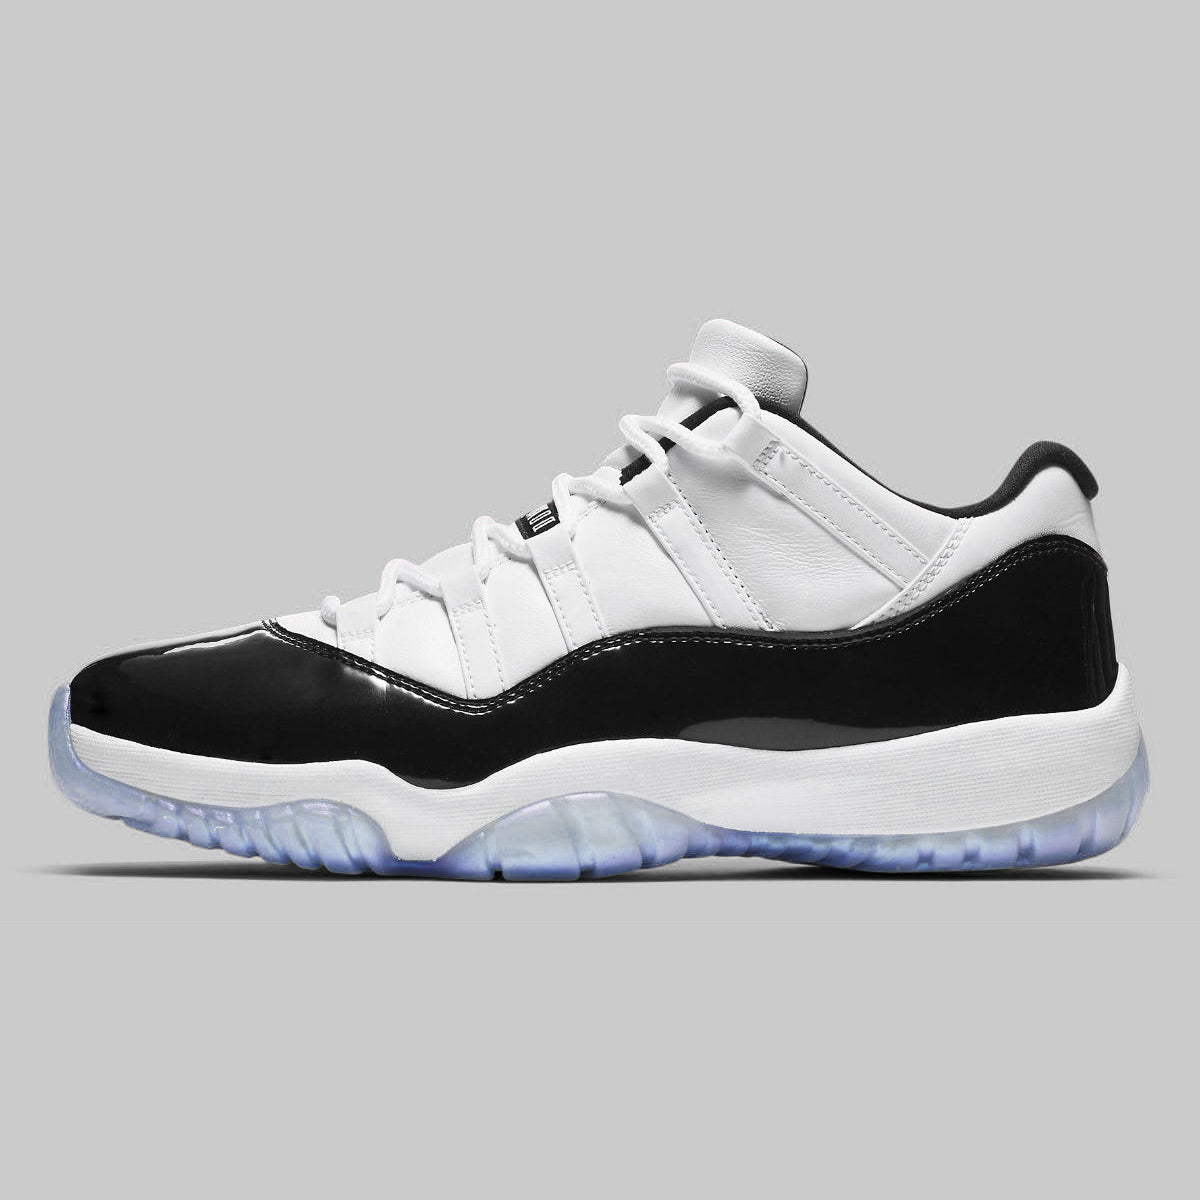 "5eaa4fa4ecf5 Nike Air Jordan 11 Low GS ""Emerald"" Easter Edition (528896-145 ..."